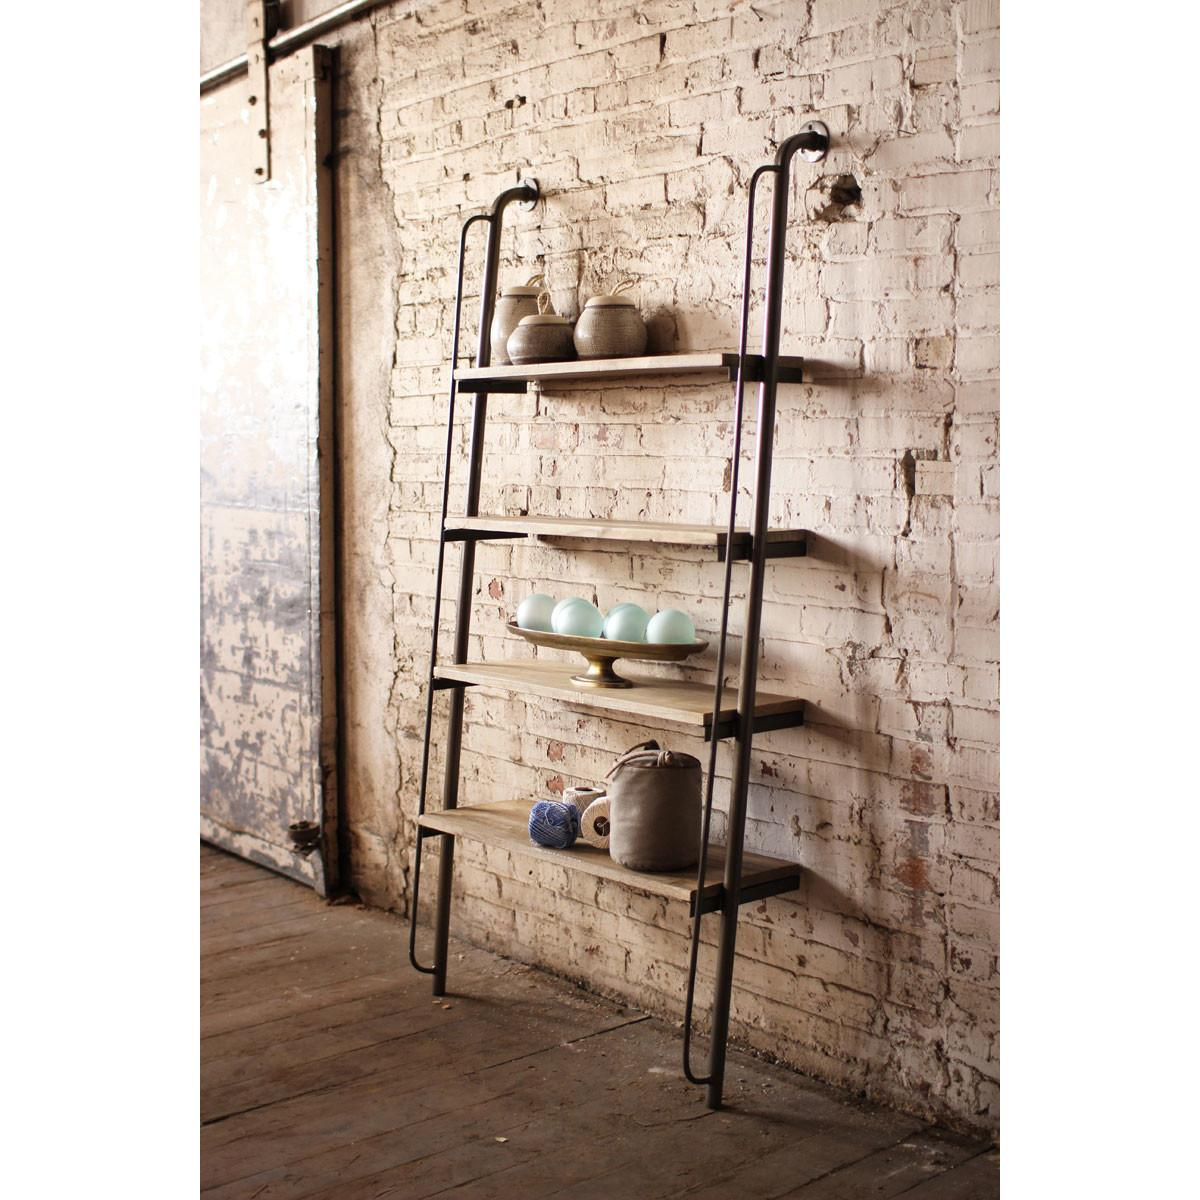 Exposed Brick Interior Wall Design Industrial Vintage